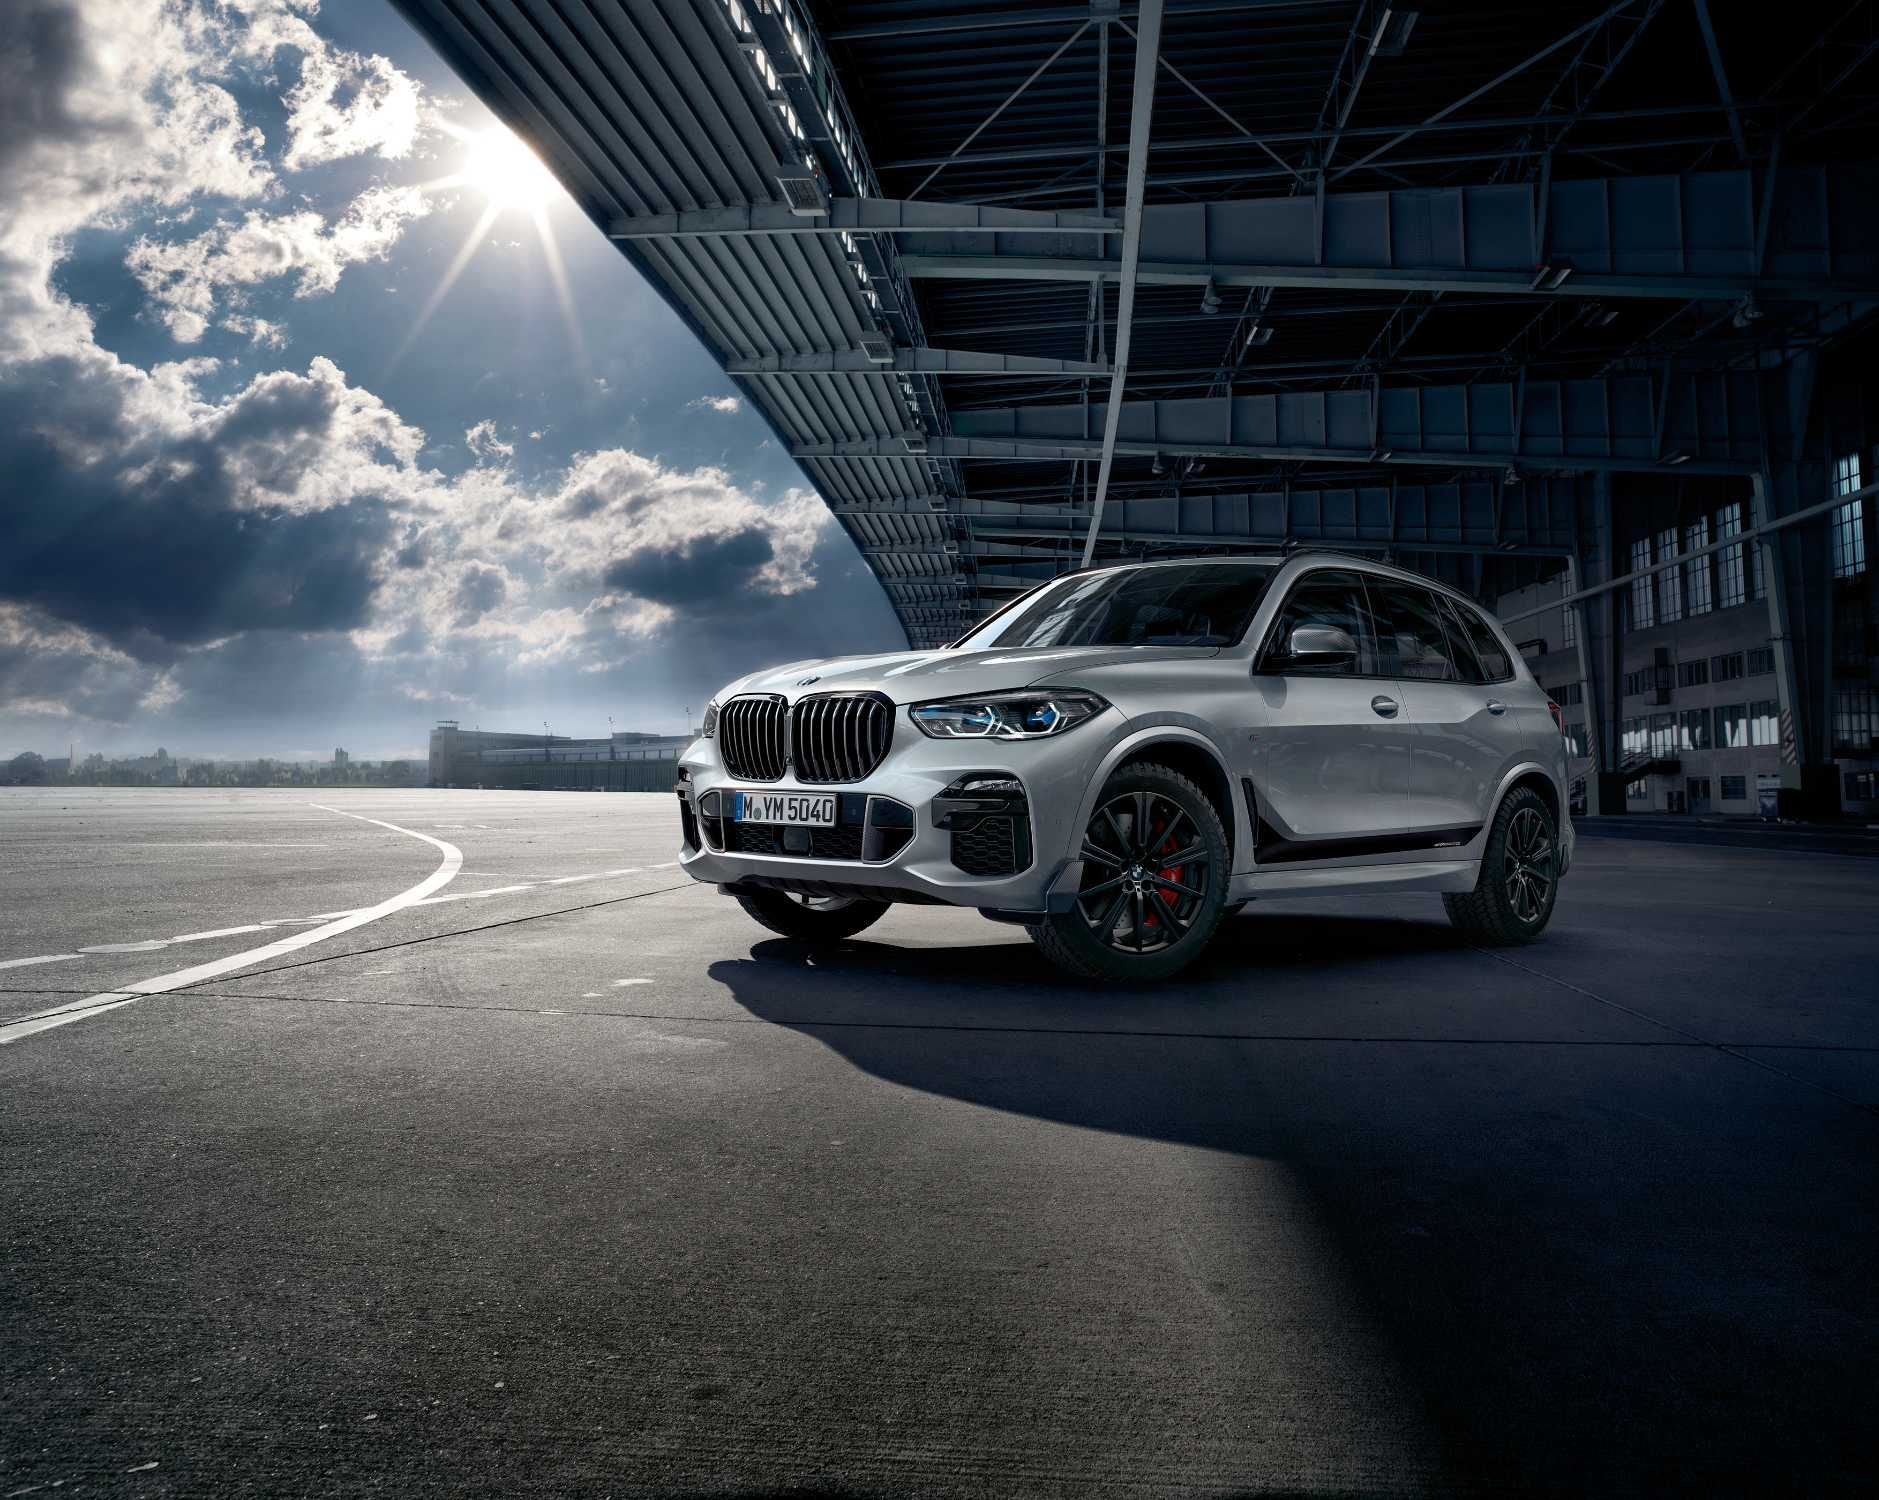 The New Bmw X5 With M Performance Parts Extensive Range Of M